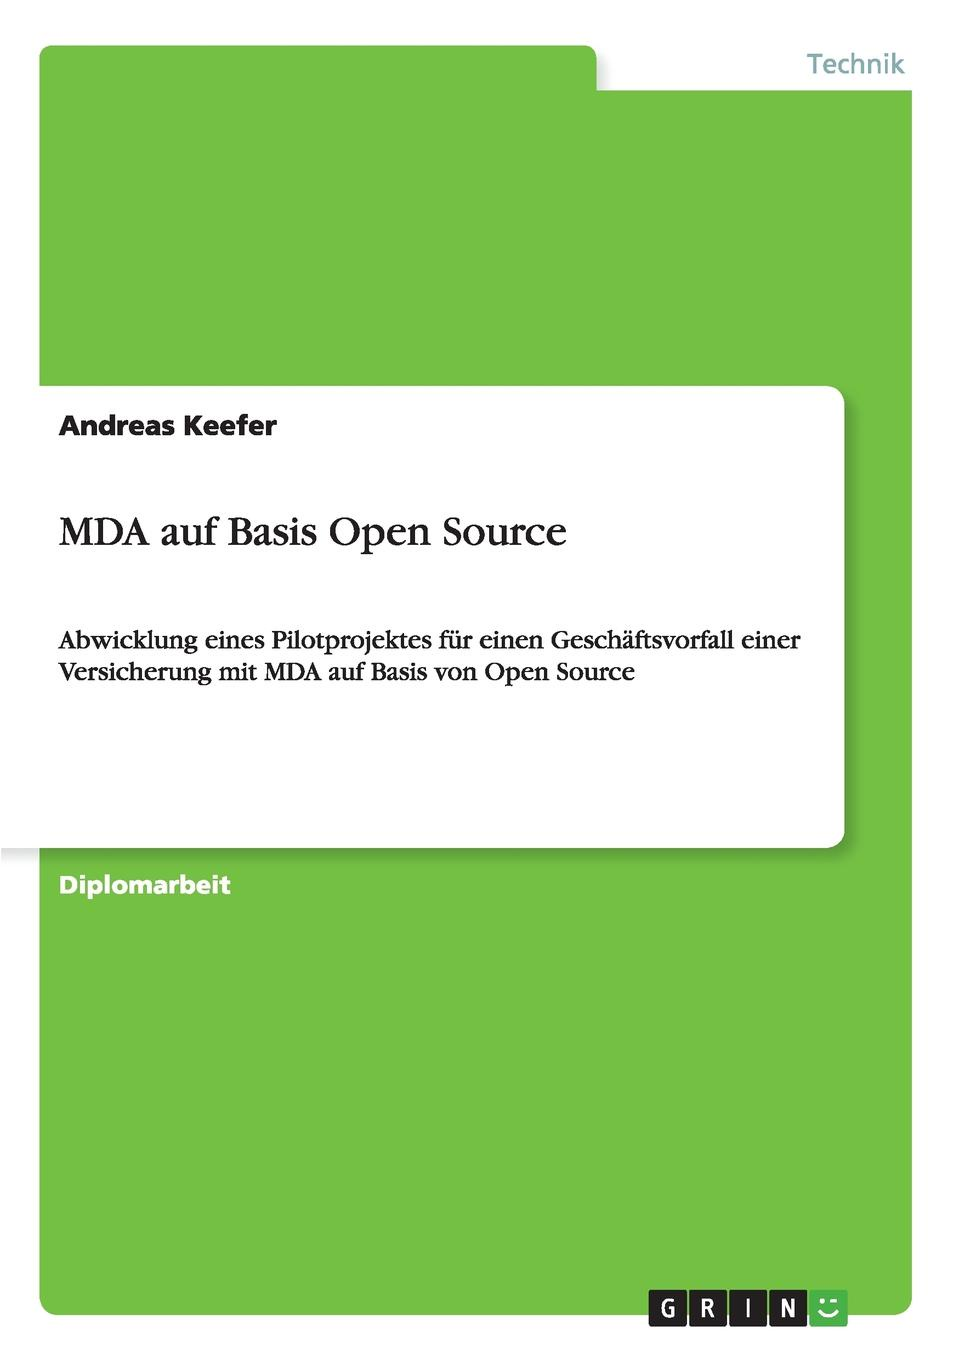 Andreas Keefer MDA auf Basis Open Source lacywear s 28 mda